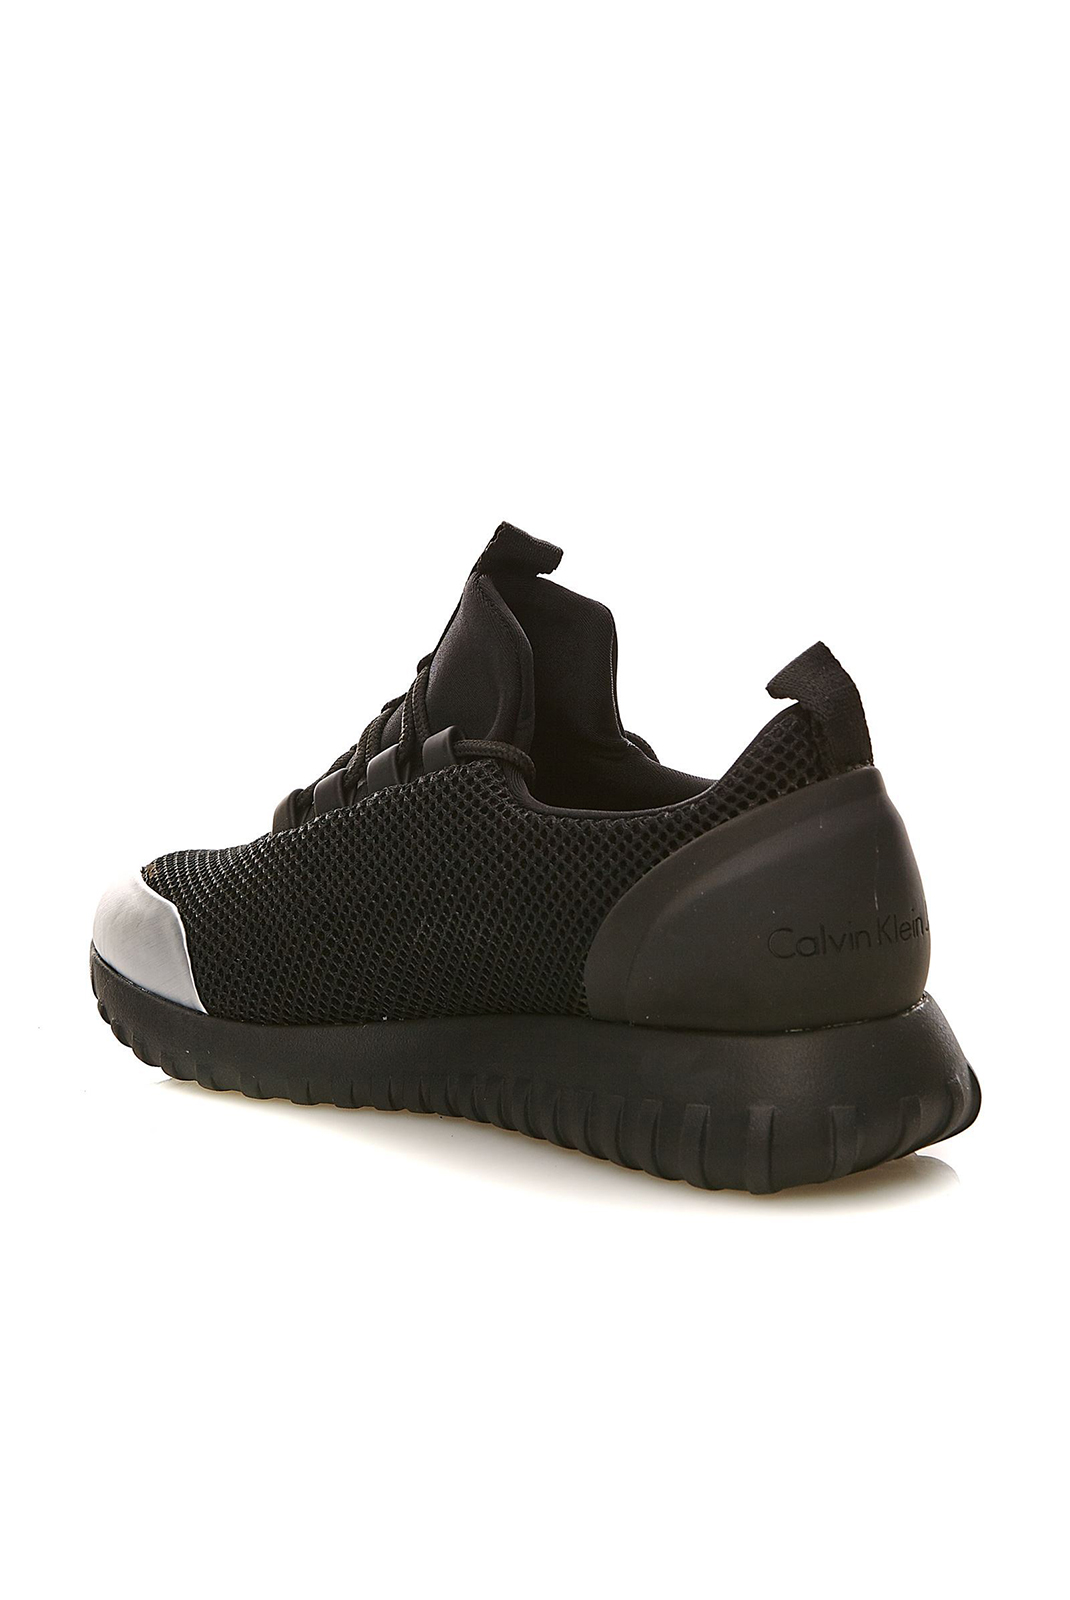 Baskets / Sneakers  Calvin klein REIKA BLACK/SILVER